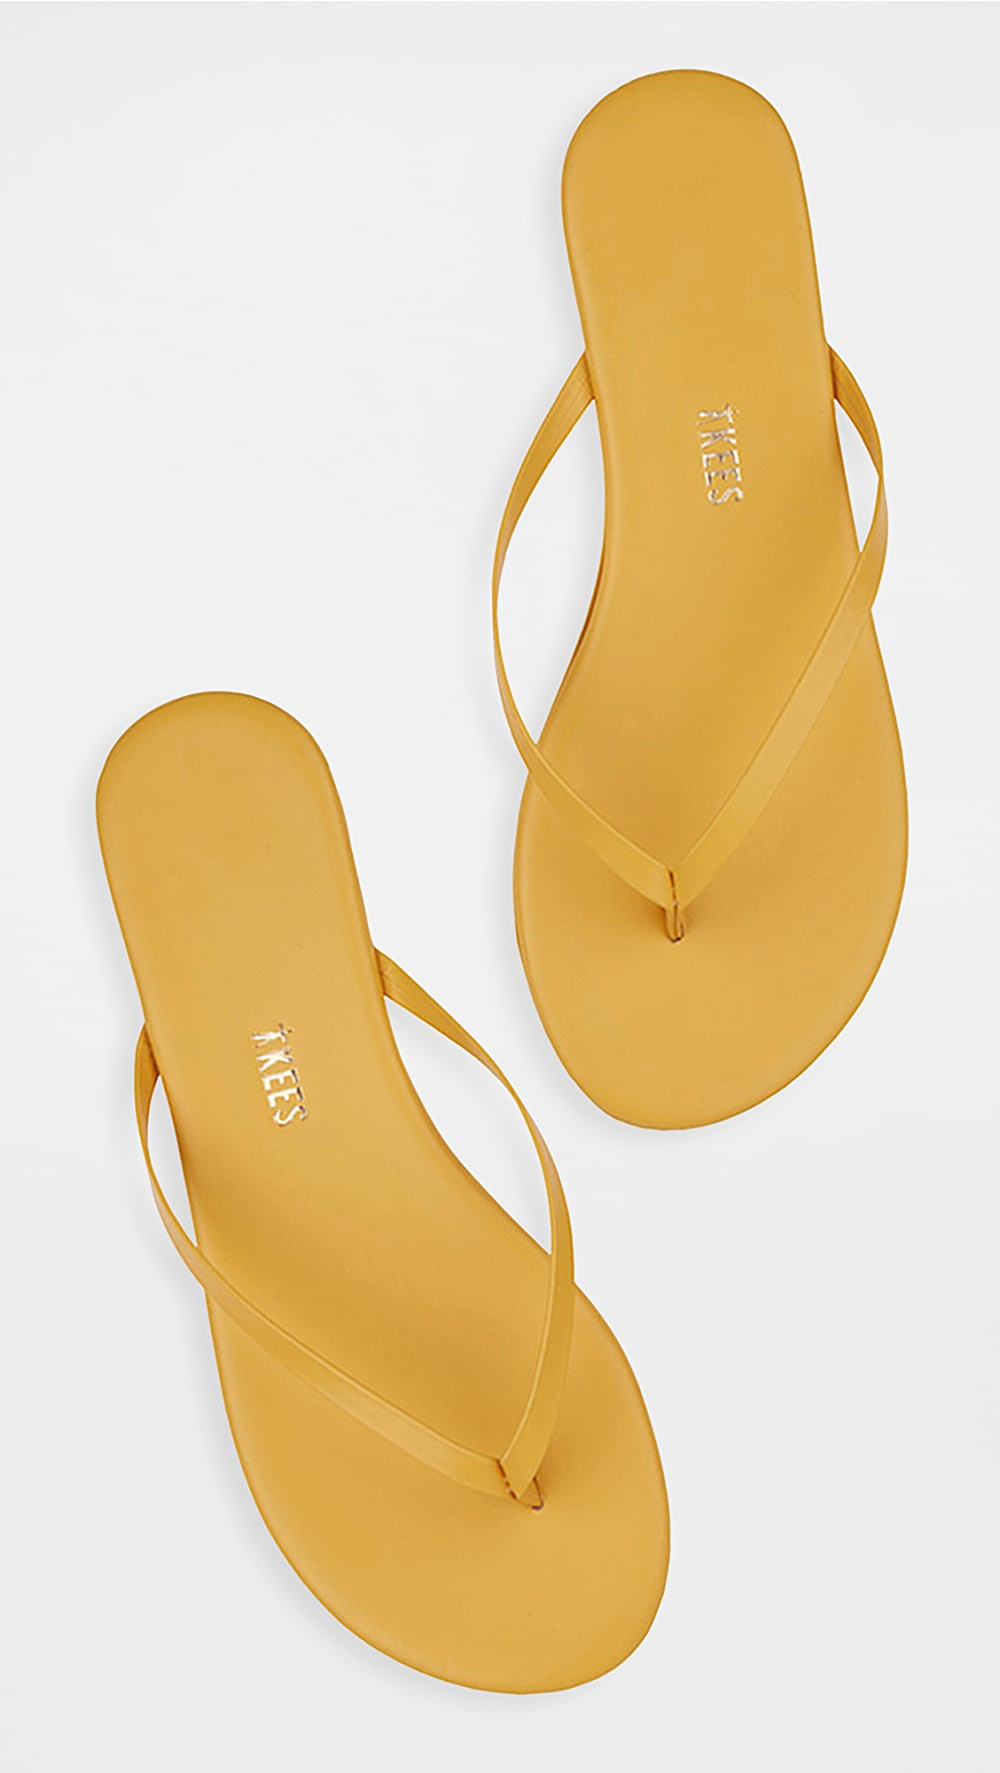 Strict Tkees - Solids Flip Flops To Be Highly Praised And Appreciated By The Consuming Public